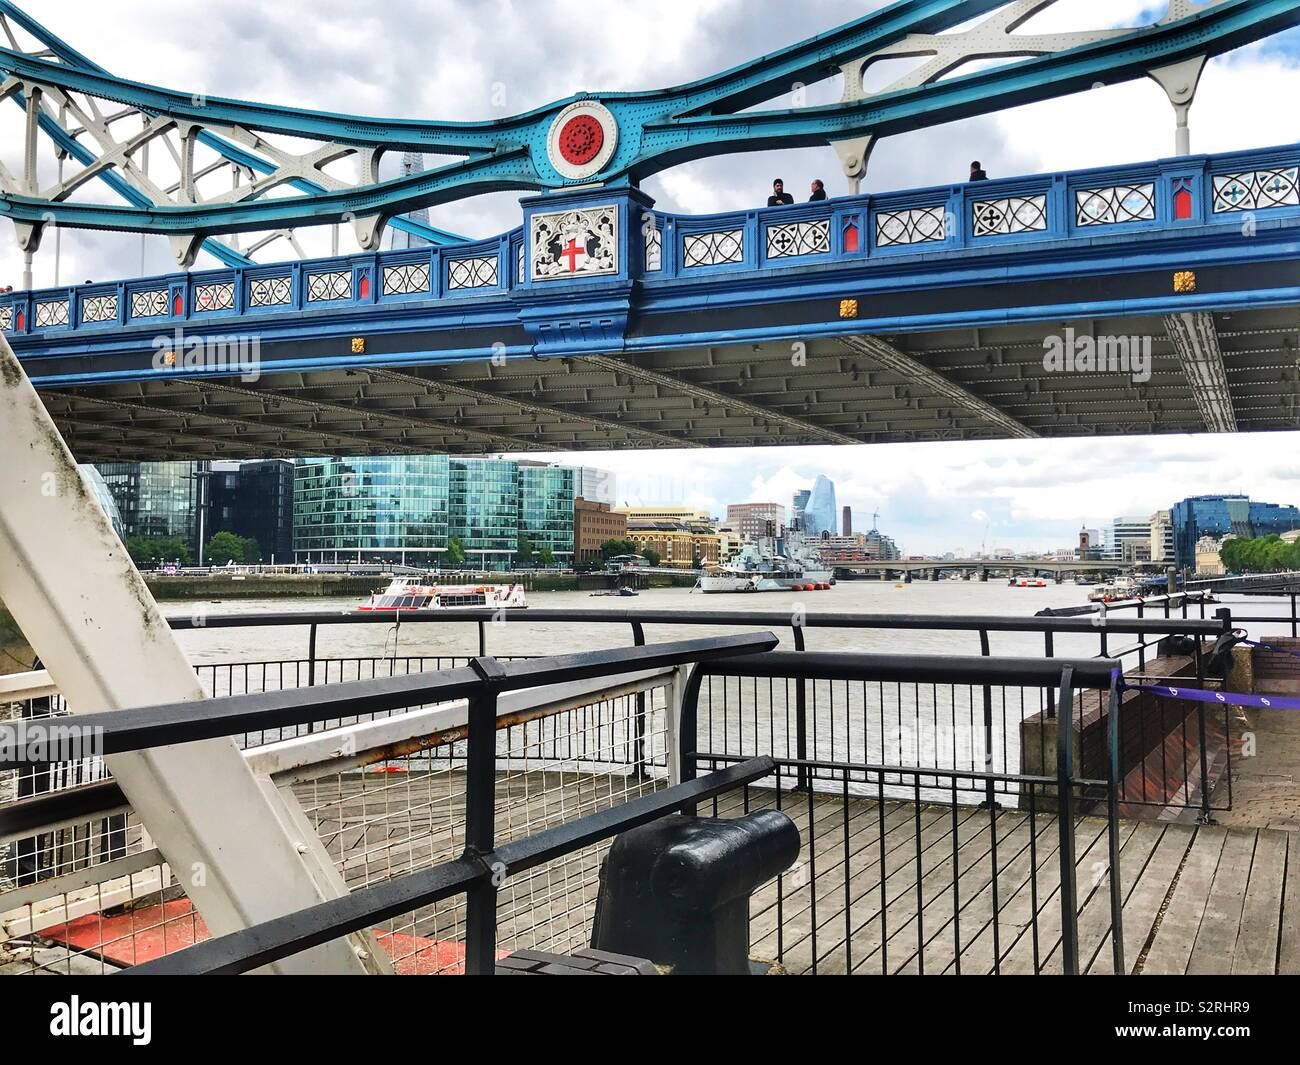 Tower Bridge and the river Thames viewed from St Katherine Docks, London, England. - Stock Image